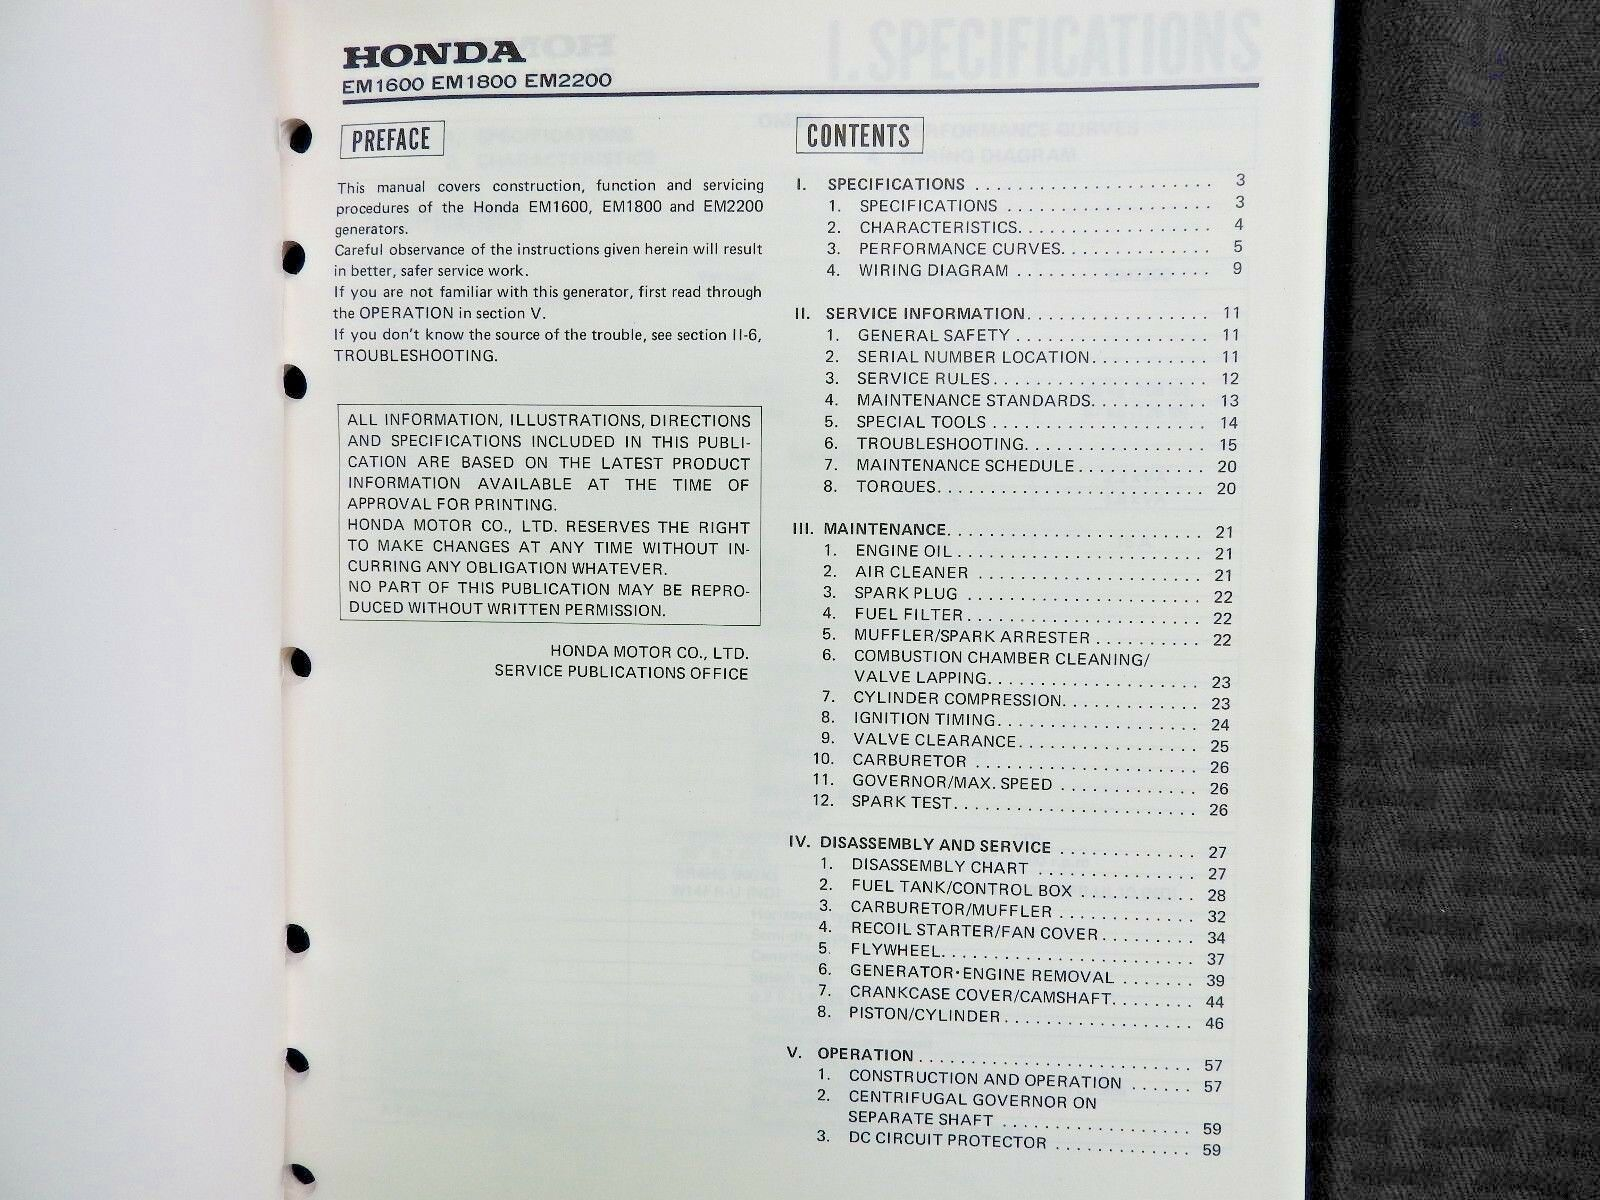 Oem Honda Generator Em1600 Em1800 Em2200 Shop Manual Ebay Black Max Wiring Diagram Norton Secured Powered By Verisign